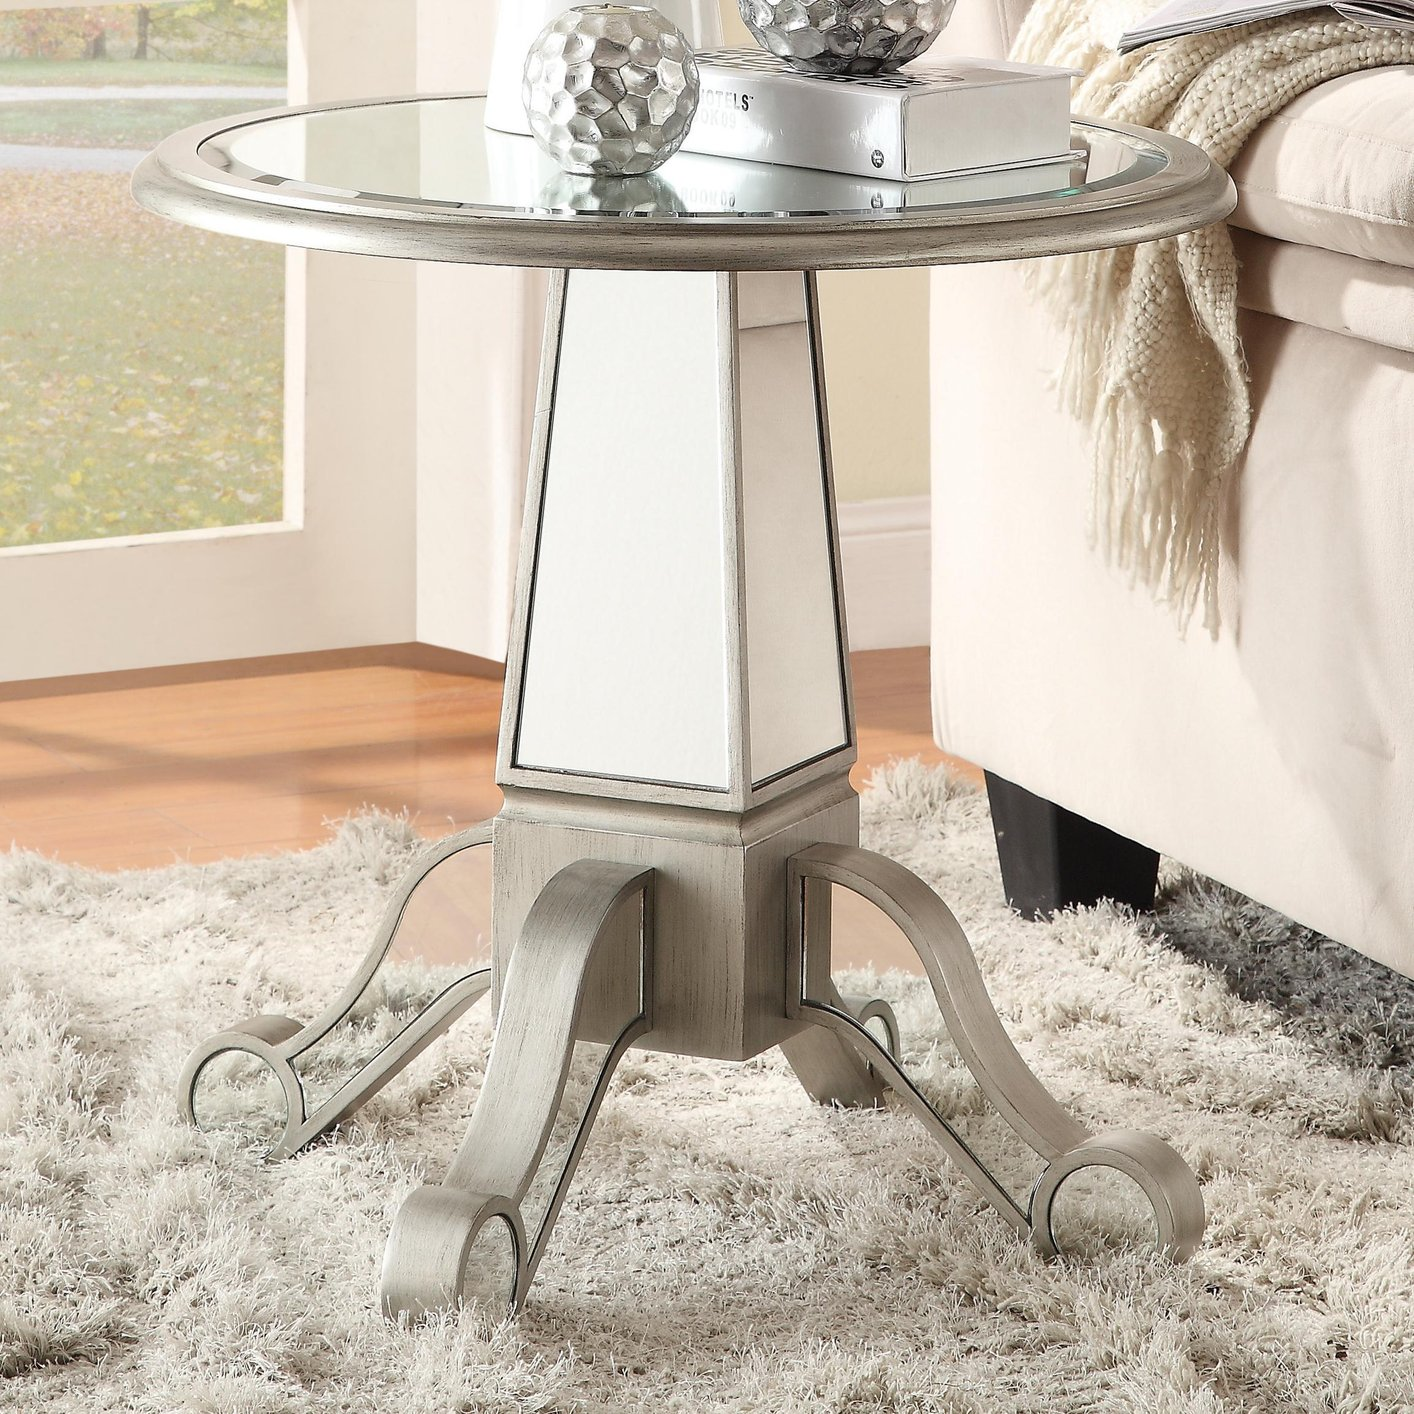 silver metal accent table steal sofa furniture los angeles glass red cabinet rustic coffee with wheels black modern side ikea dining sets inexpensive lamps room small oak cube